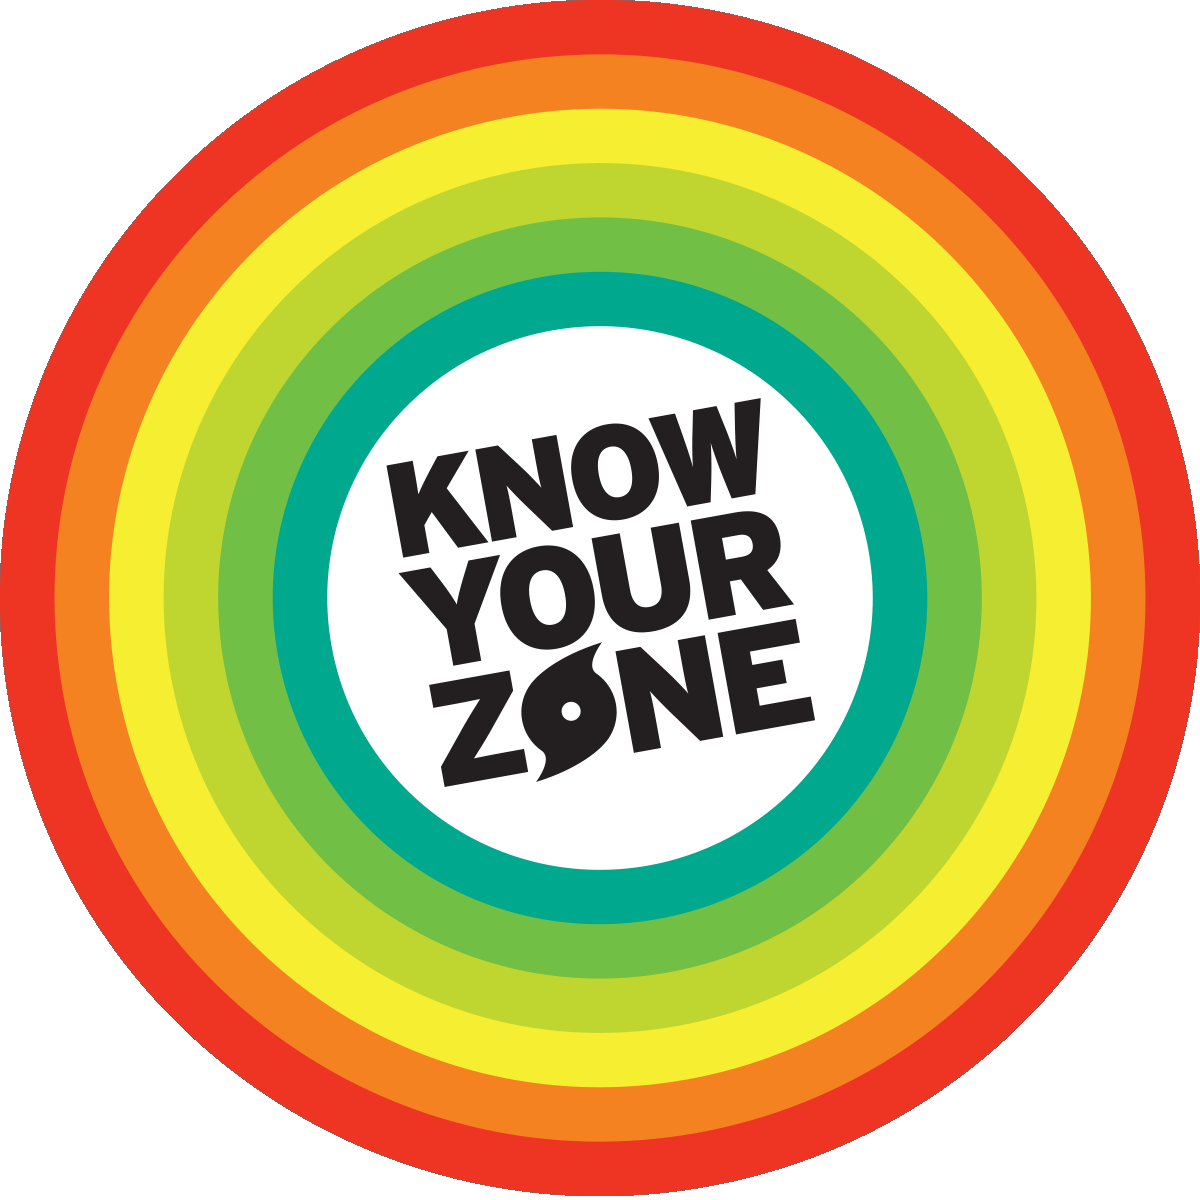 know your zone nyc emergency management